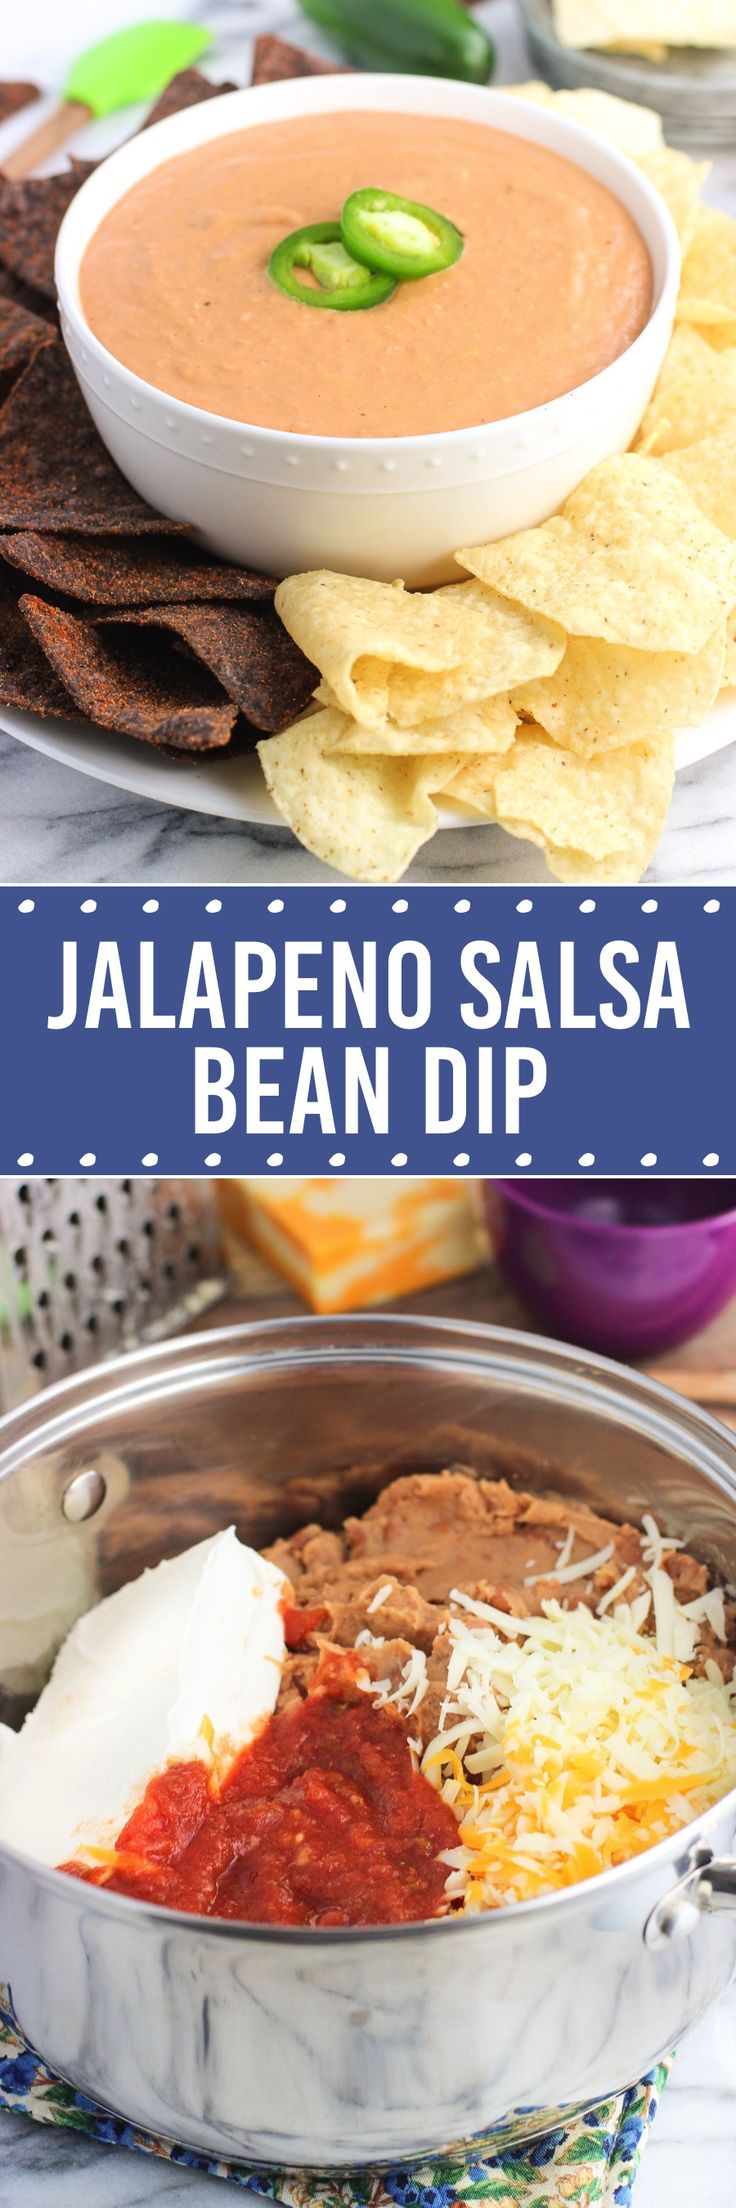 A big bowl of this jalapeno salsa bean dip is just what your next get-together needs! This dip has easy prep and you can customize the spice level by switching up the salsa variety. Warm, creamy, and delicious.